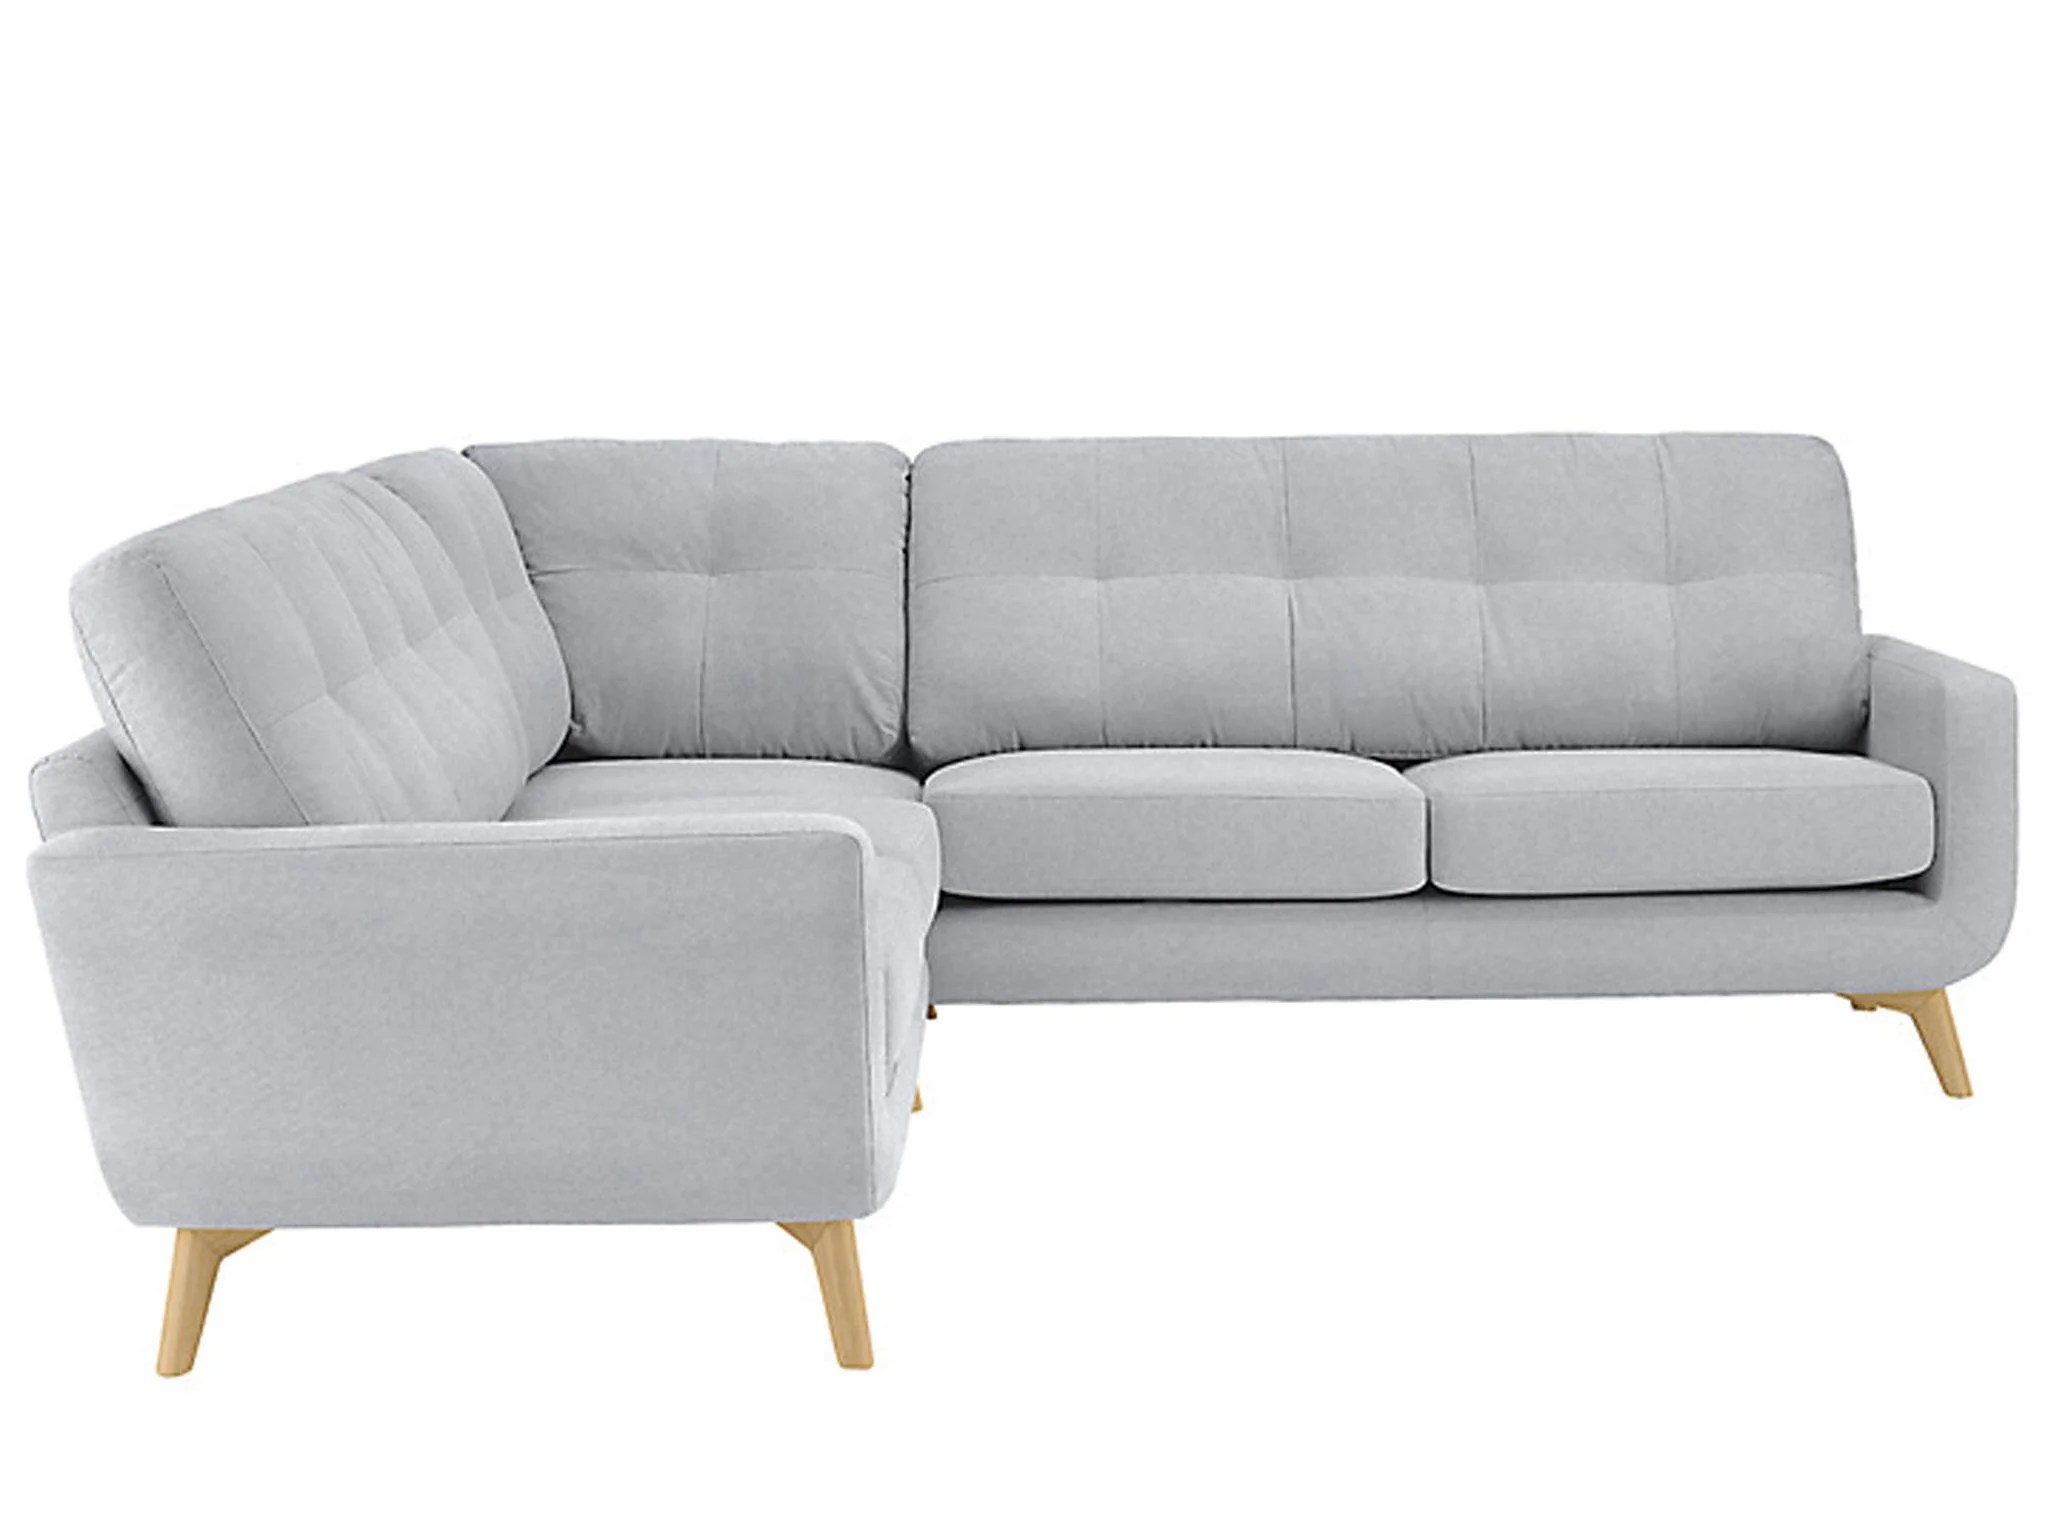 john lewis loose chair covers white leather recliner 11 best corner sofas the independent this popular range by has a retro feel with curving base angled legs and stitched back detailing version connects couple of